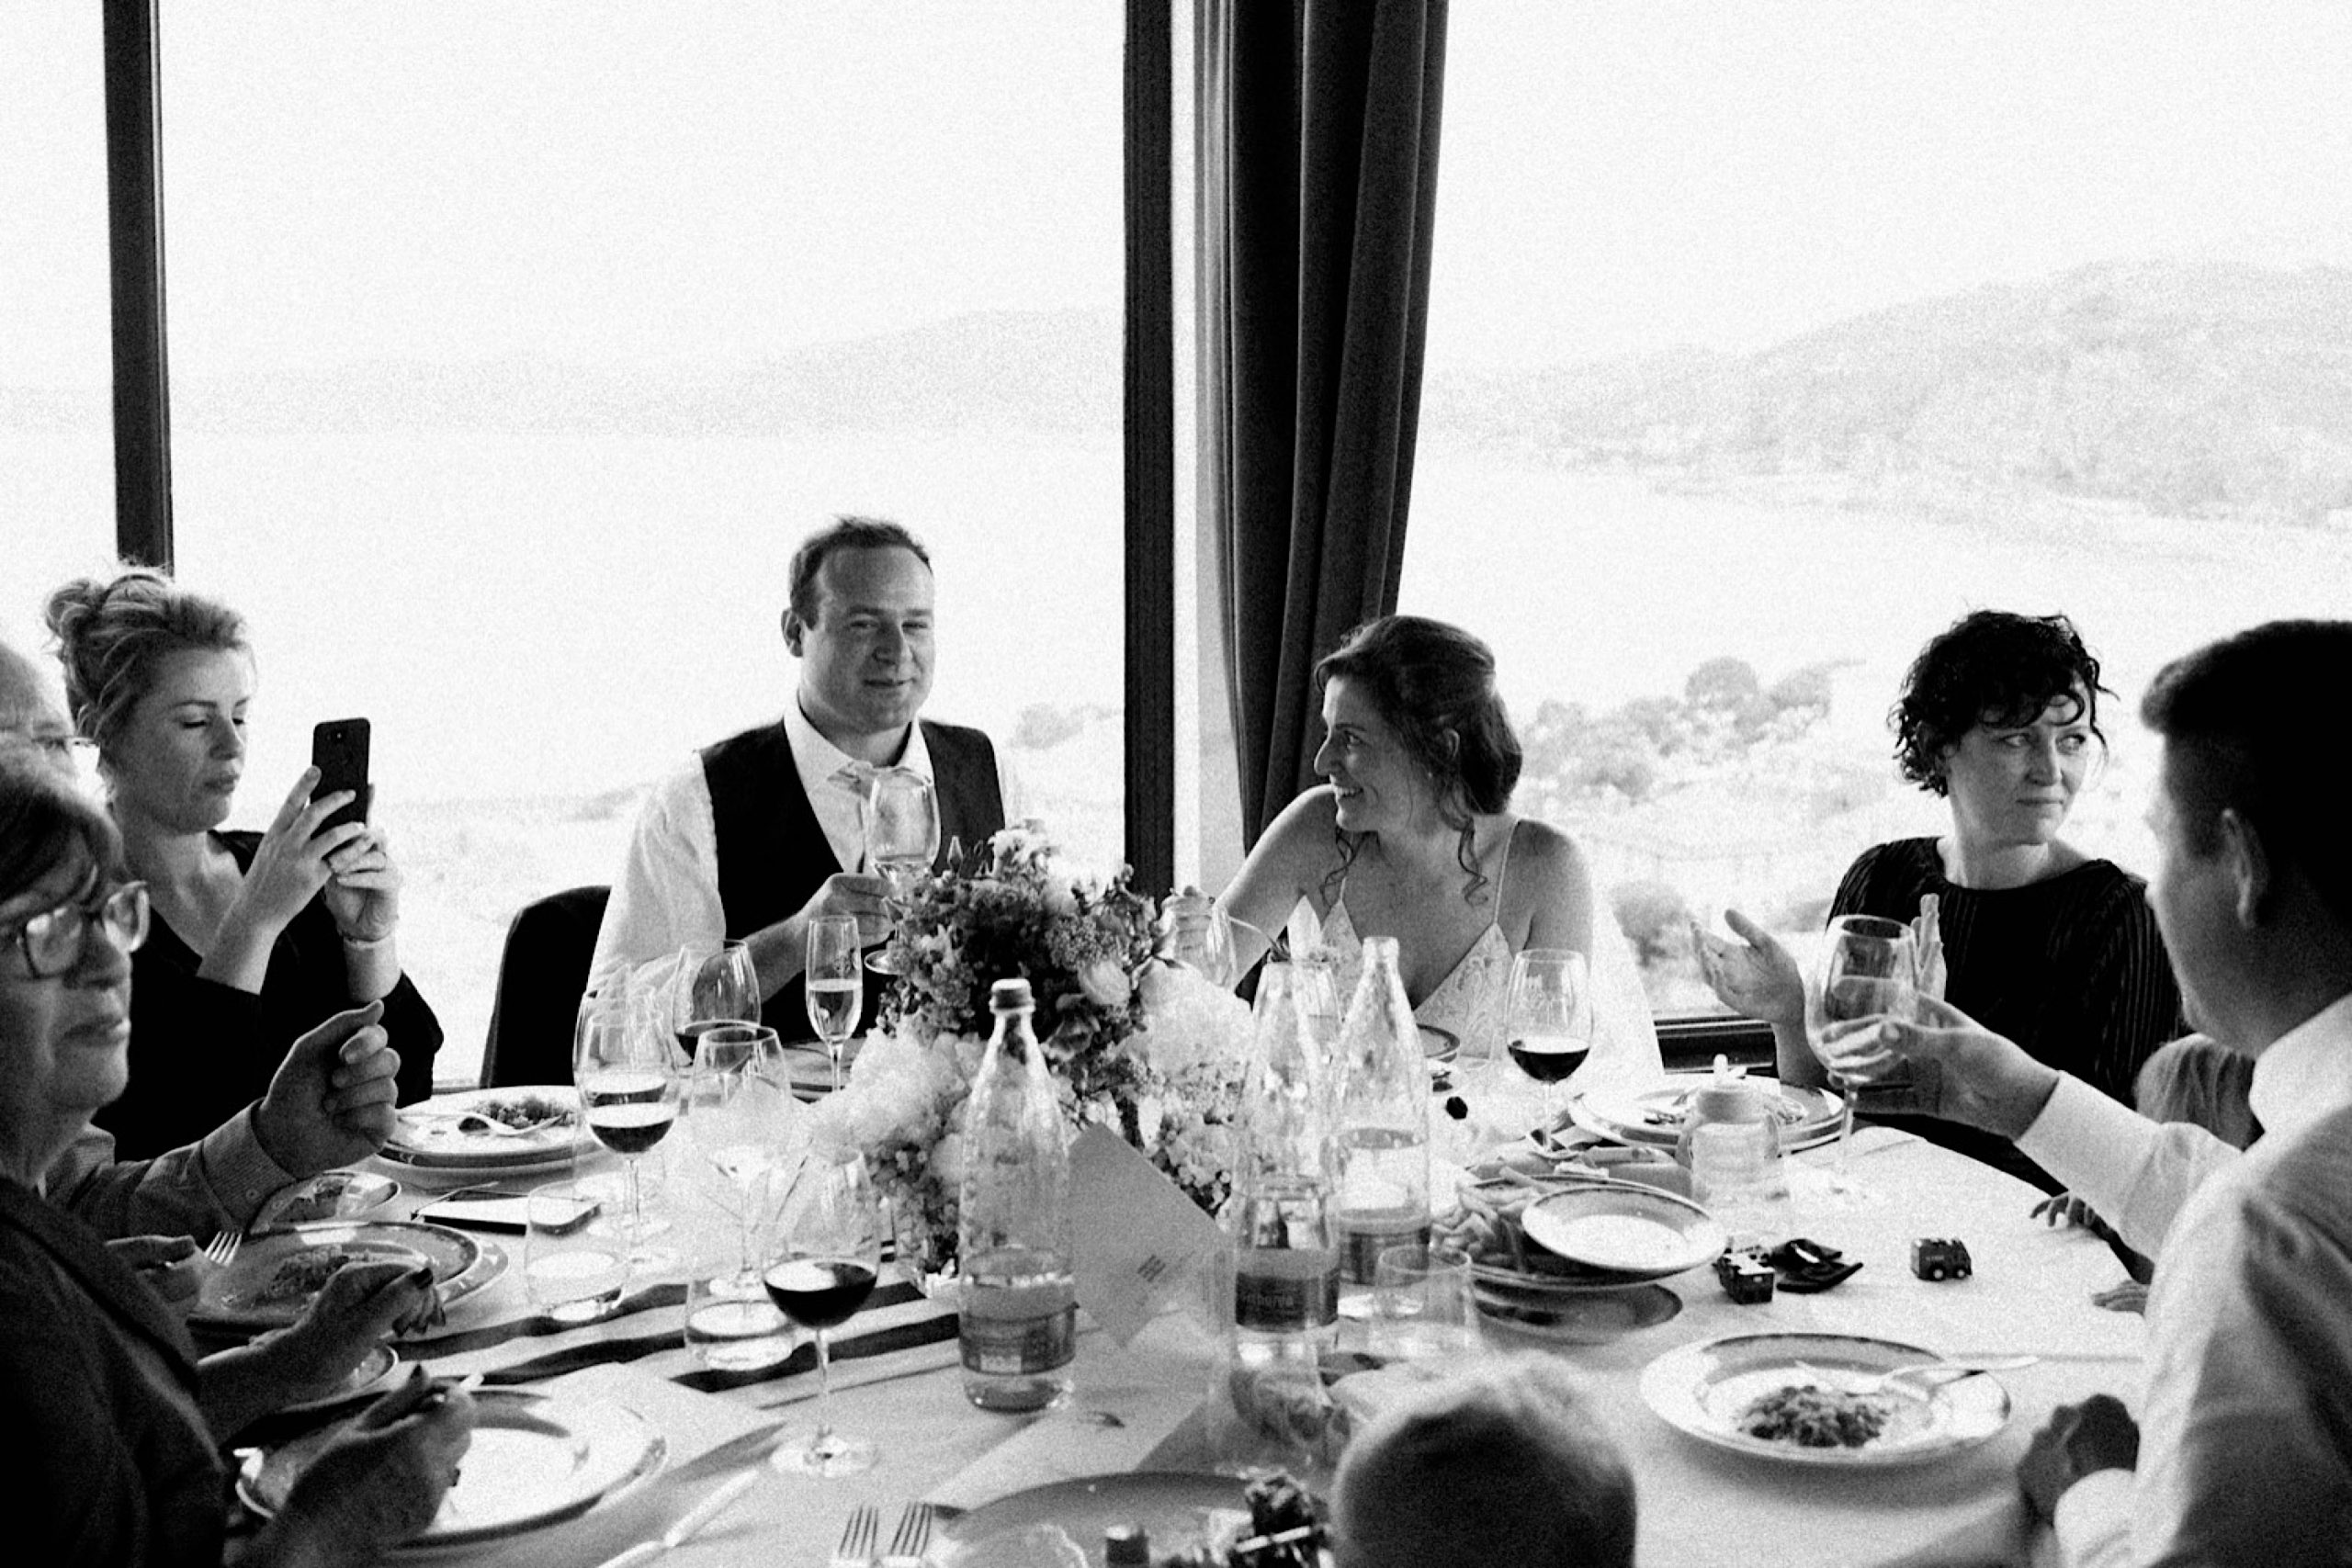 Black & White Candid Wedding Photography of a newlywed couple sitting at their Sestri Levante Wedding Reception.